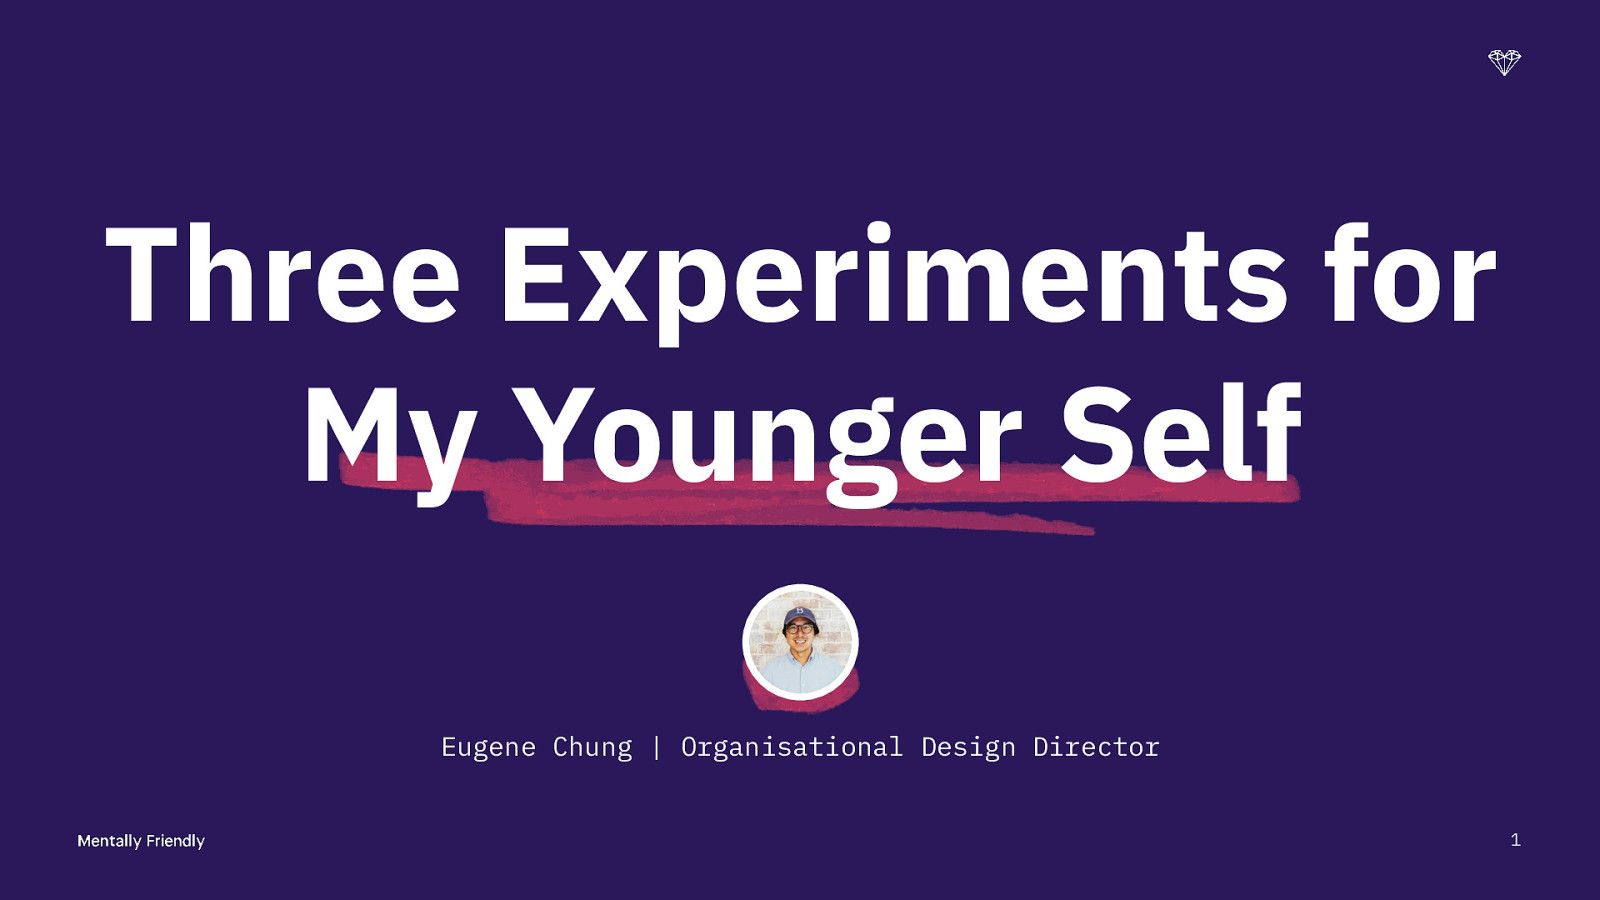 Three Experiments for My Younger Self